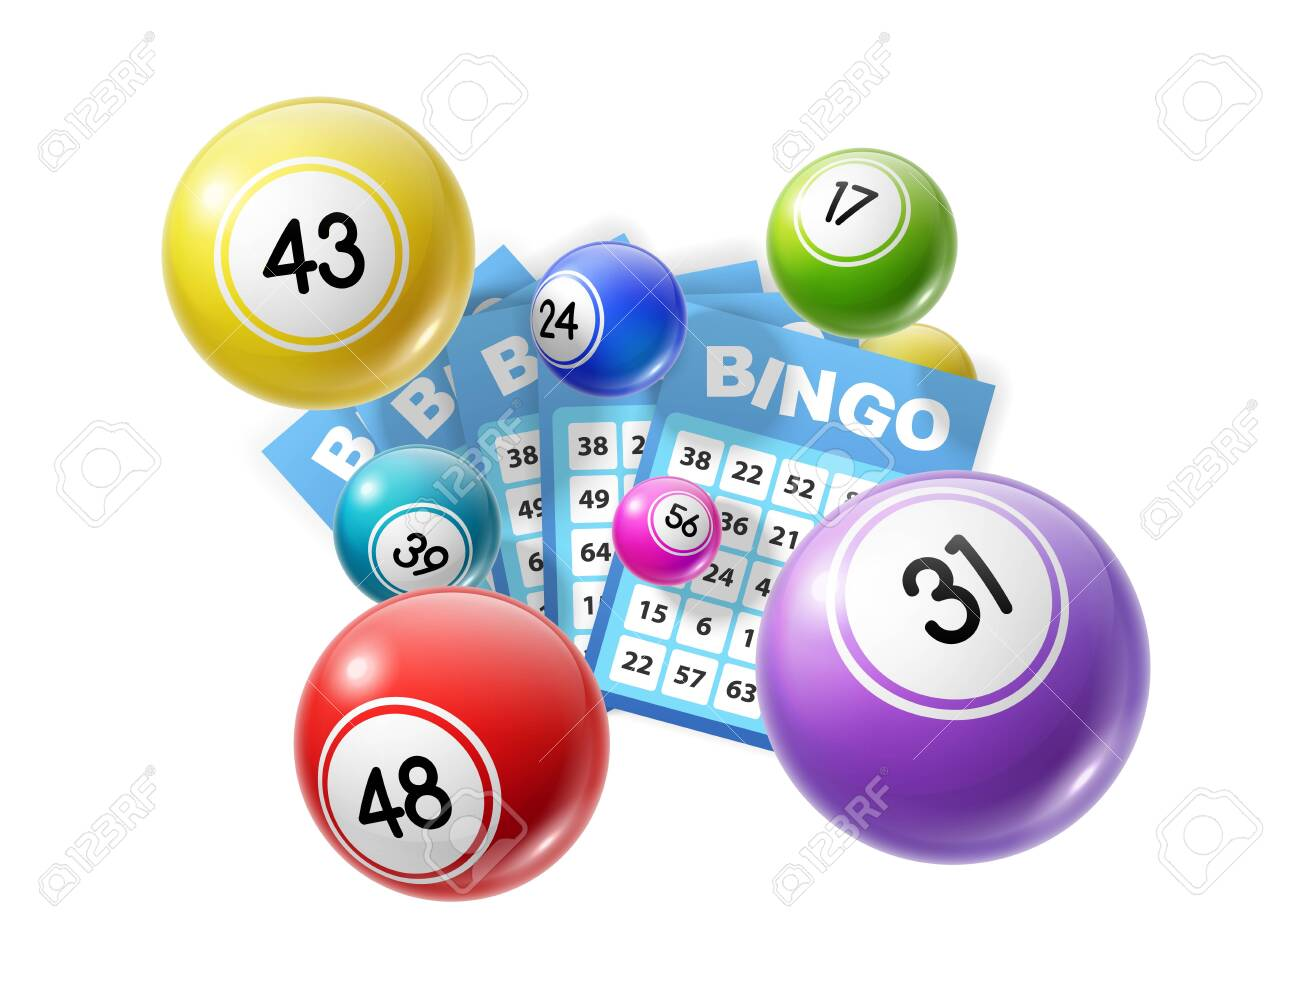 Bingo lotto game balls and lottery cards with lucky numbers